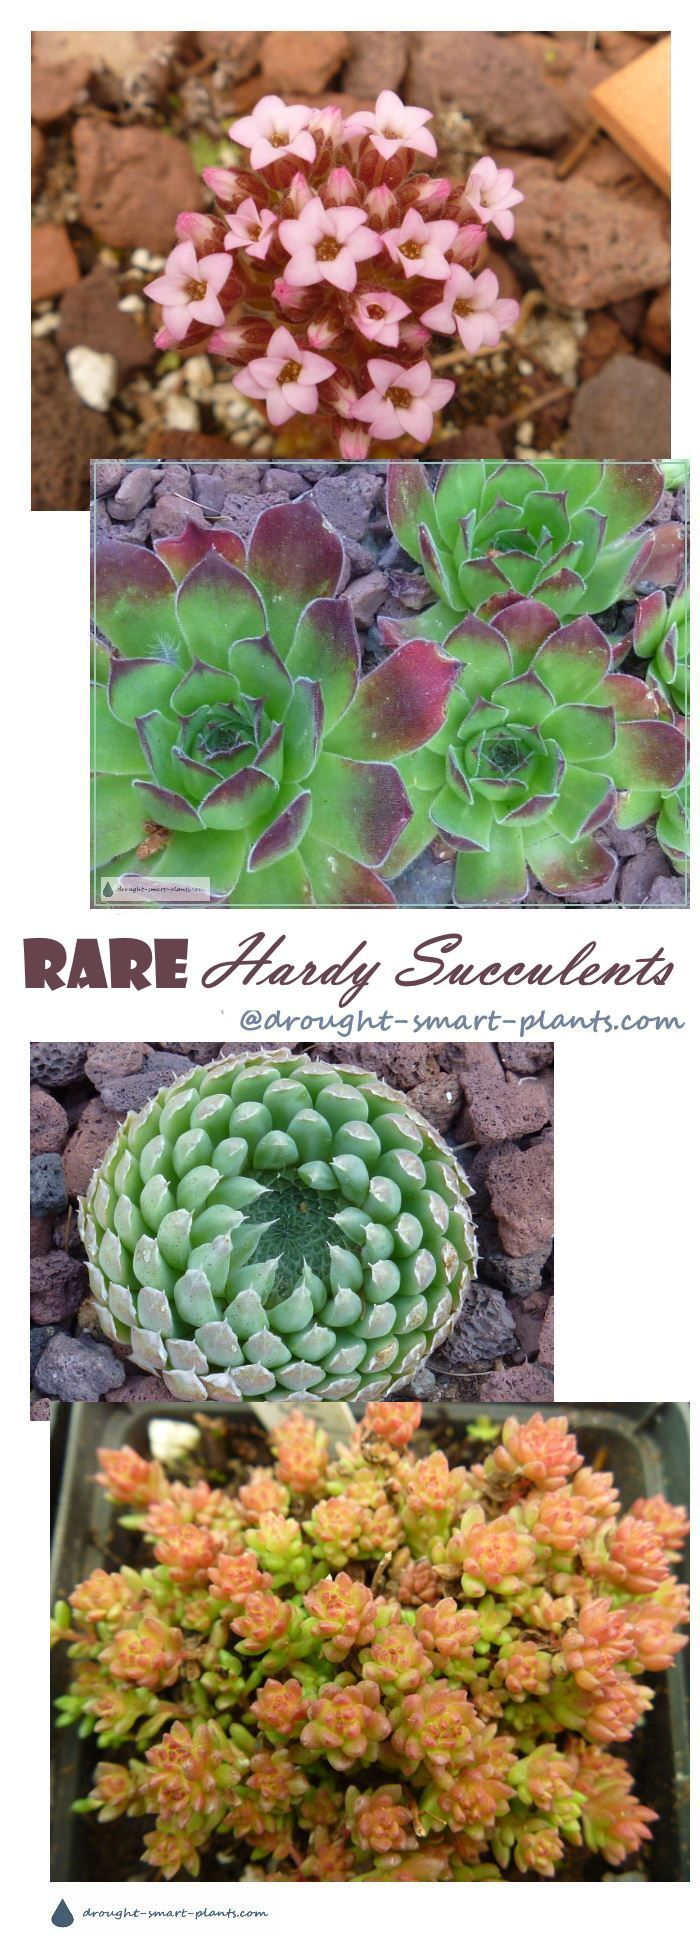 Rare Hardy Succulents - the uncommon, the unusual, the sought after